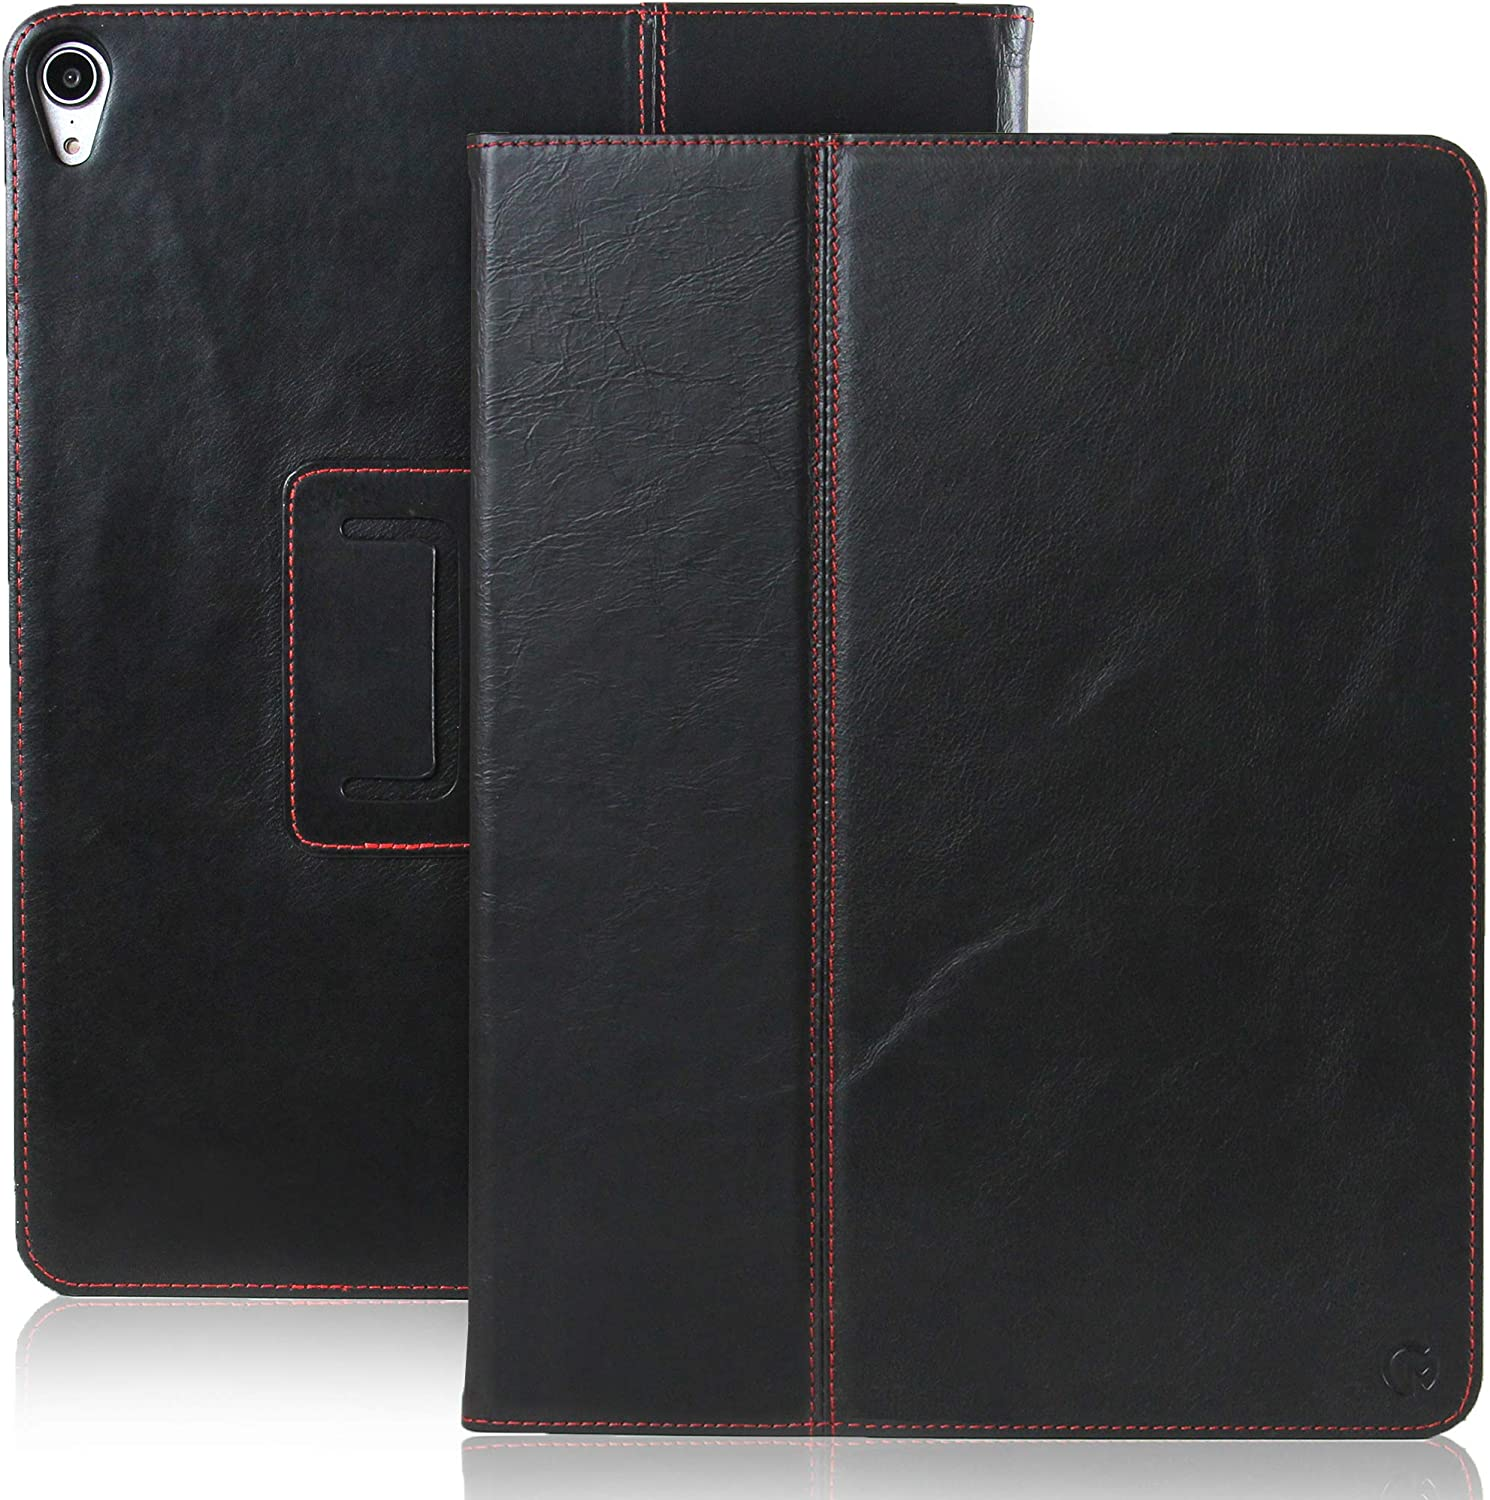 CASEMADE iPad Pro 12.9 inch Real Leather Case (3rd Generation 2018) - Premium Luxury Italian Slim Cover/Smart Folio with Dual Stand and Auto Sleep/Wake (Black)